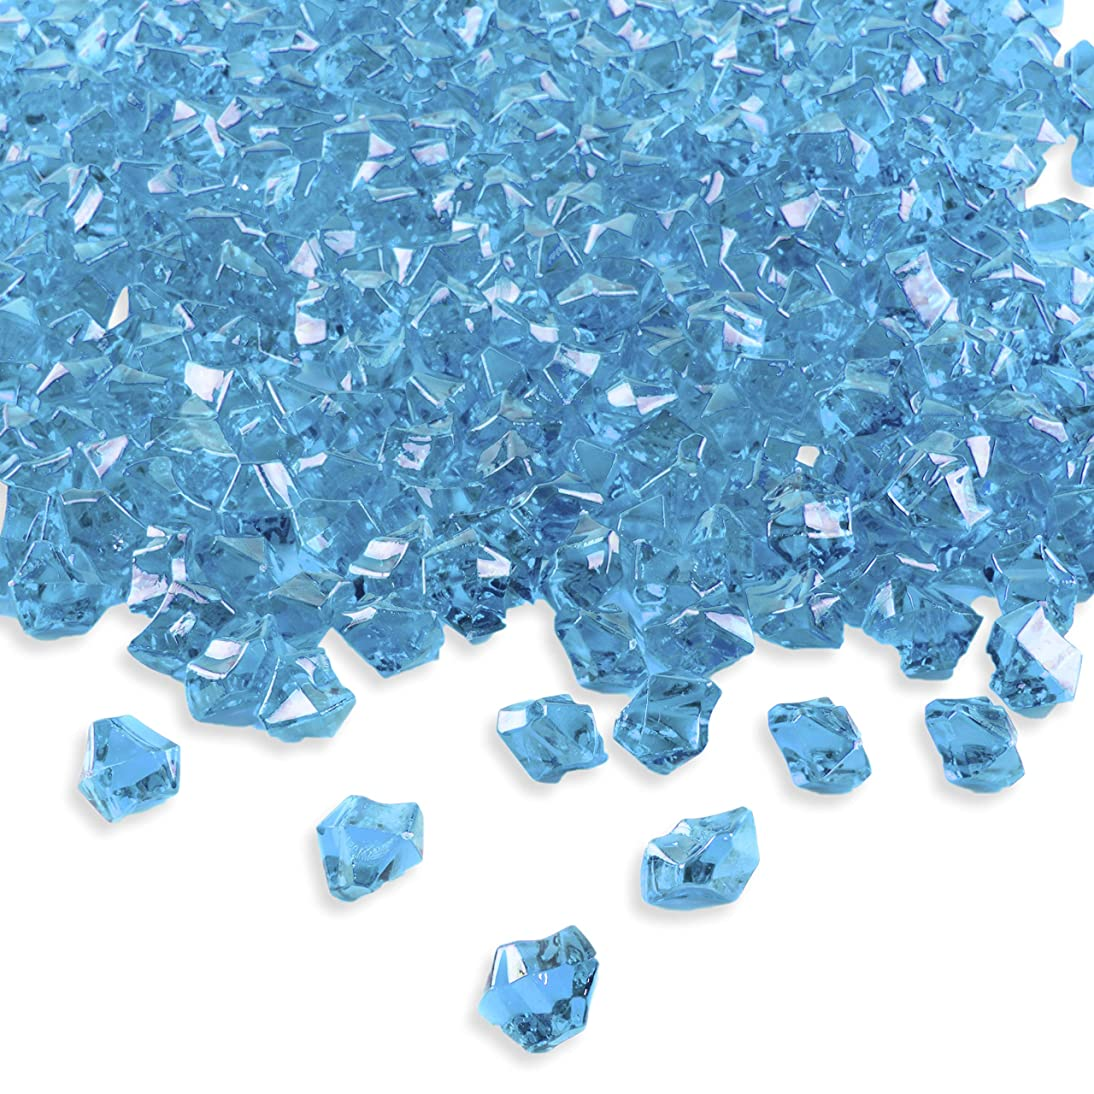 Super Z Outlet Acrylic Color Ice Rock Crystals Treasure Gems for Table Scatters, Vase Fillers, Event, Wedding, Birthday Decoration Favor, Arts & Crafts (385 Pieces) (Blue)